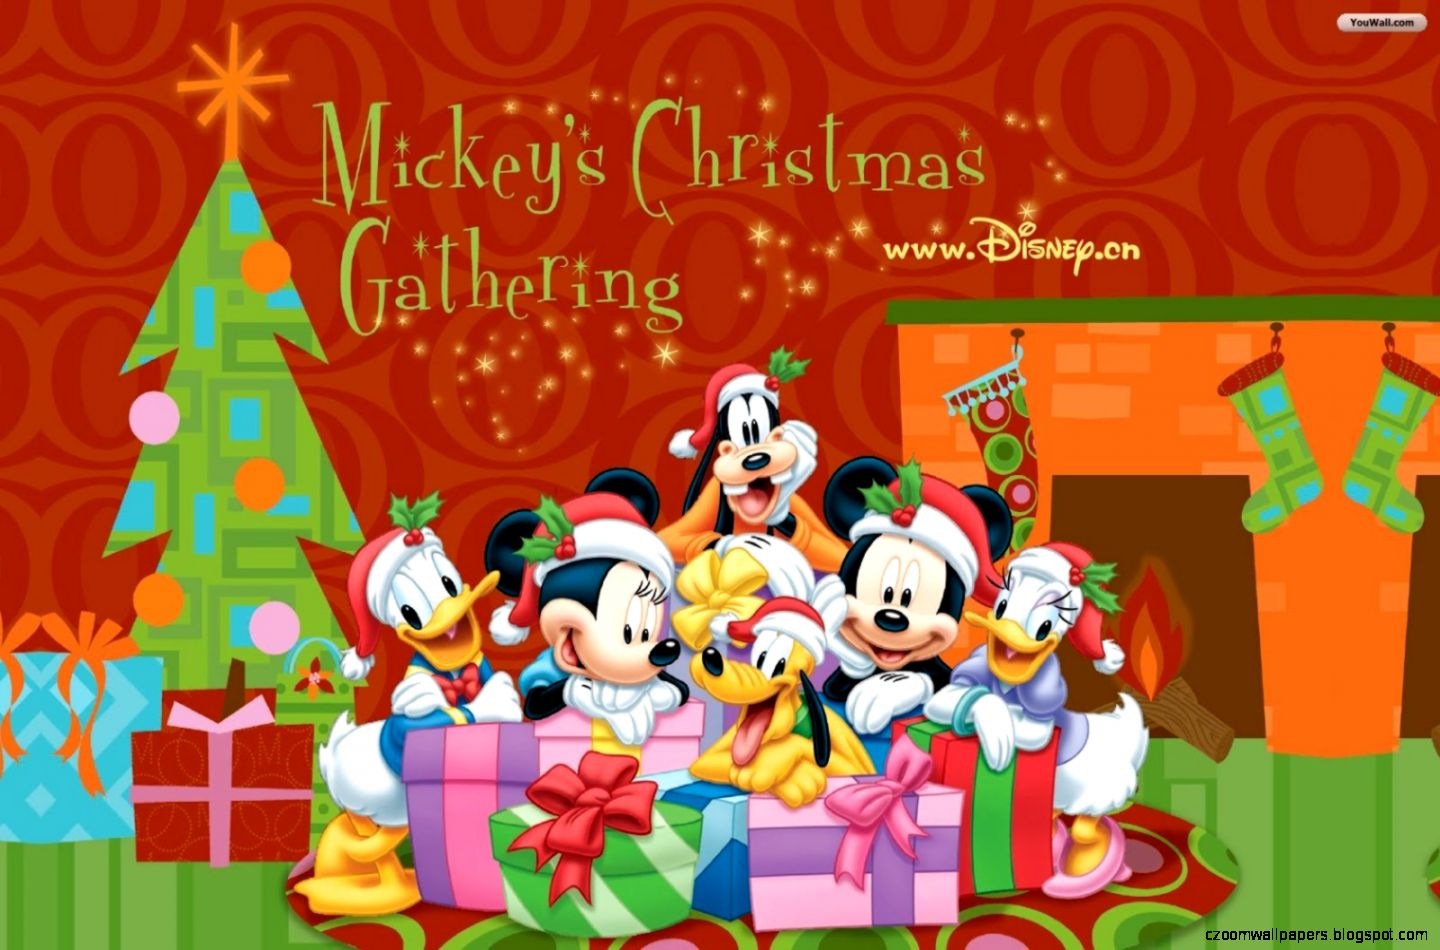 Merry Christmas Disney Screensaver